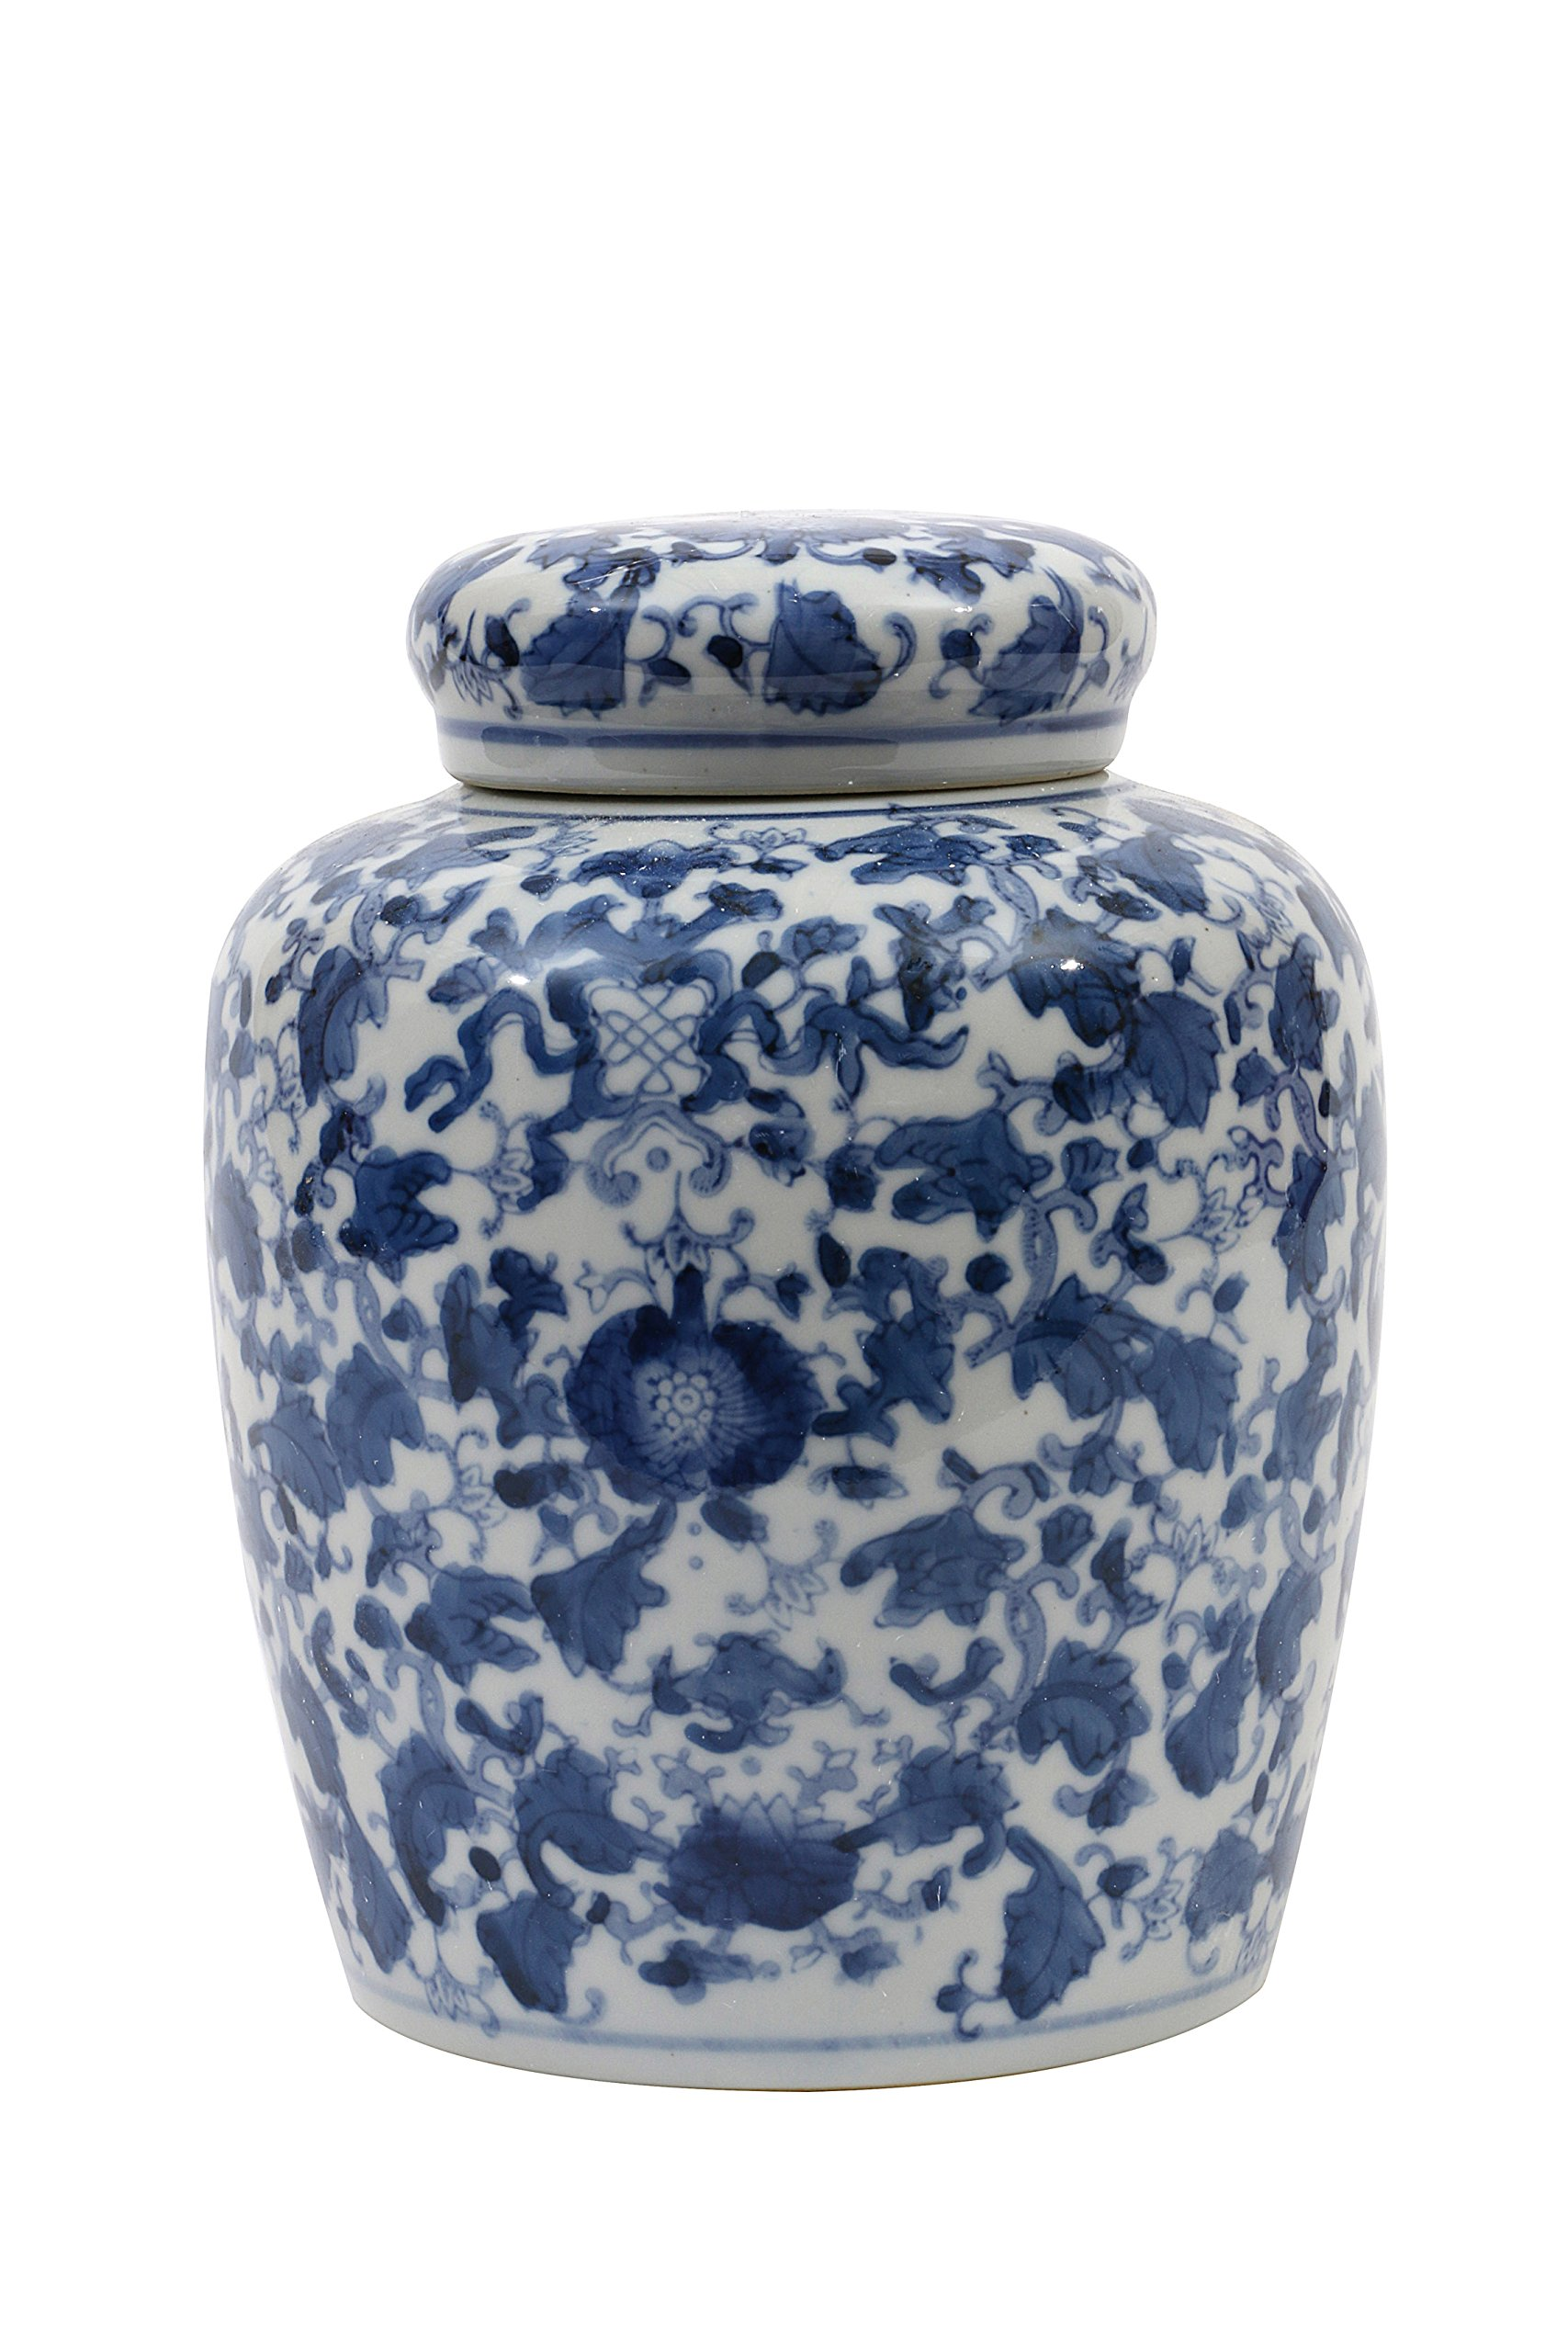 Creative Co-op Decorative Blue and White Ceramic Ginger Jar with Lid by Creative Co-op